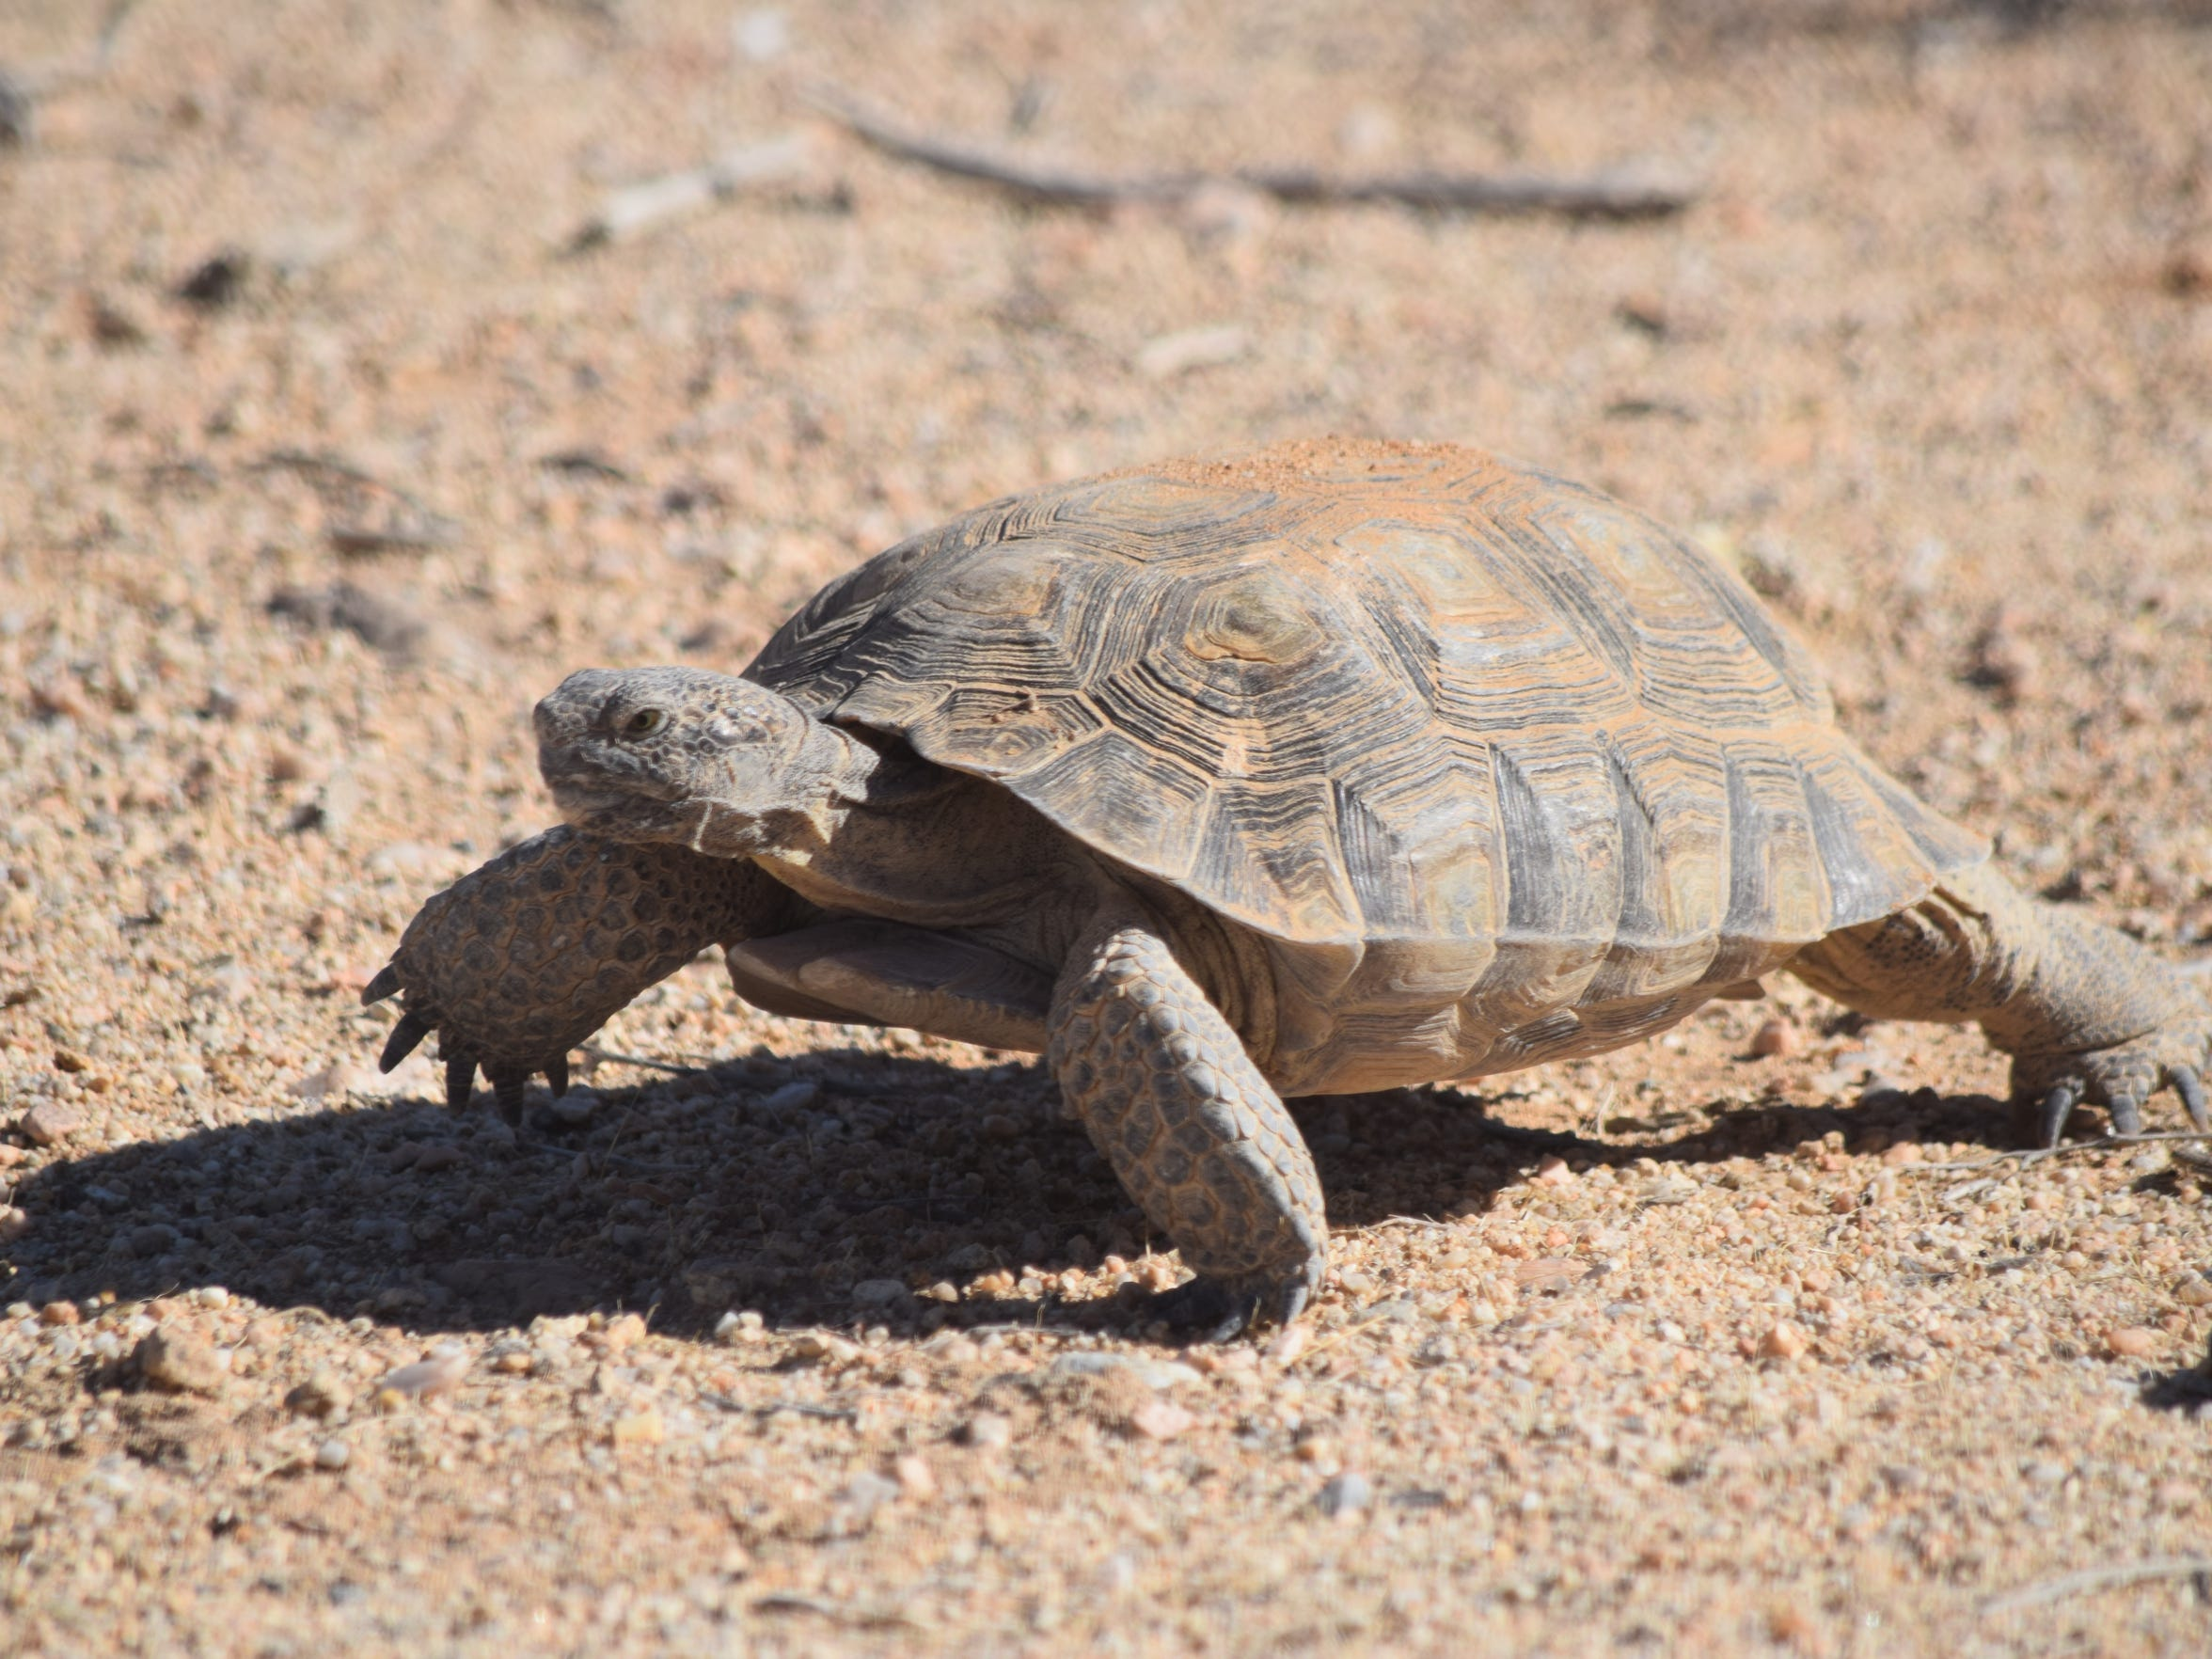 The desert tortoise is one of 27 threatened plant and animal species protected by the Coachella Valley Multiple Species Habitat Conservation Plan, established in 2008.